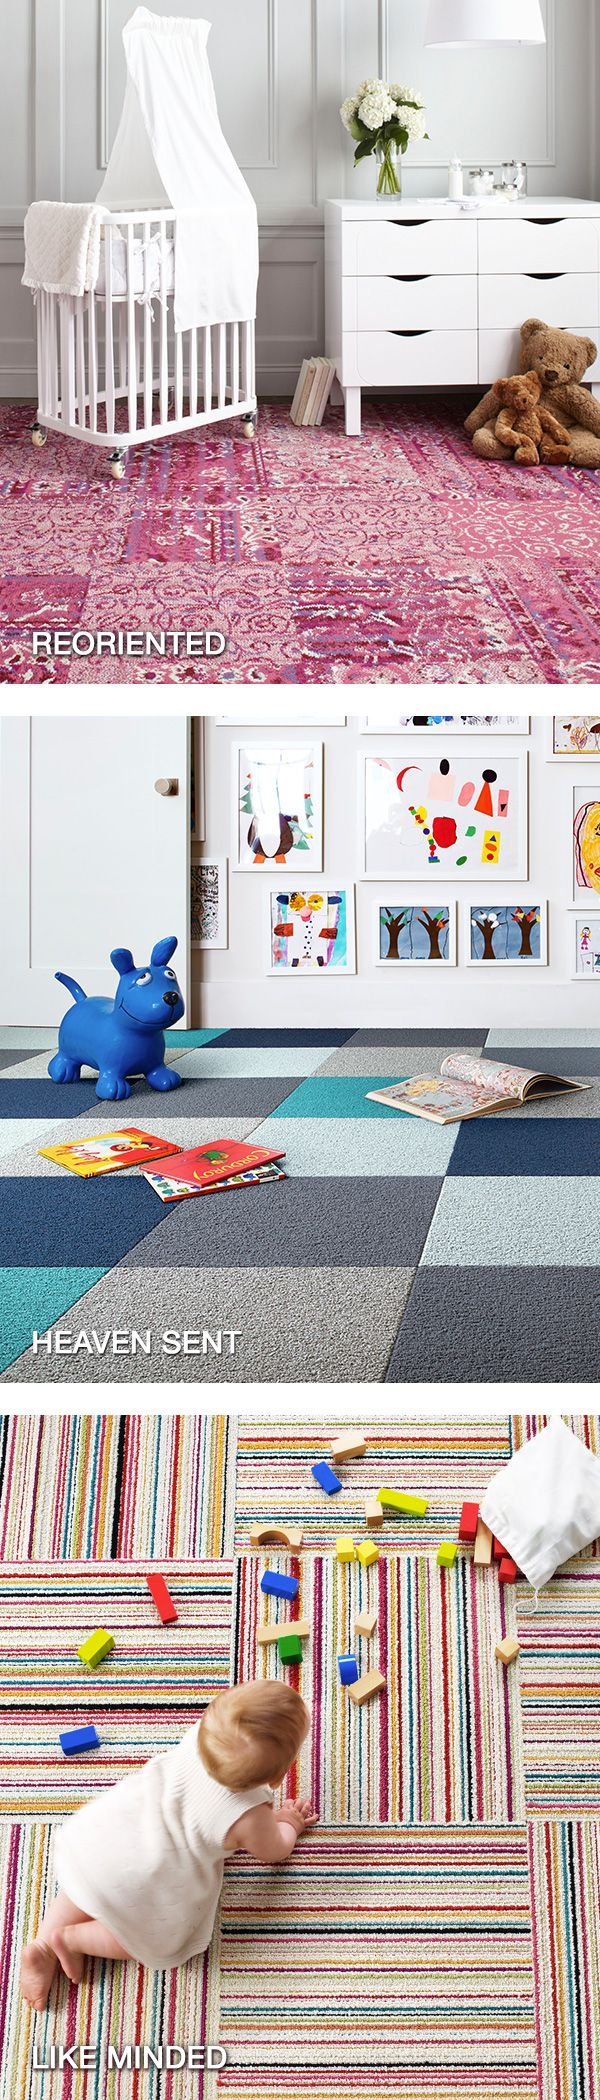 Best 25 floor carpet tiles ideas on pinterest carpet tiles design a creative area rug for playtime and playdatesflor carpet tiles make it easy baanklon Images